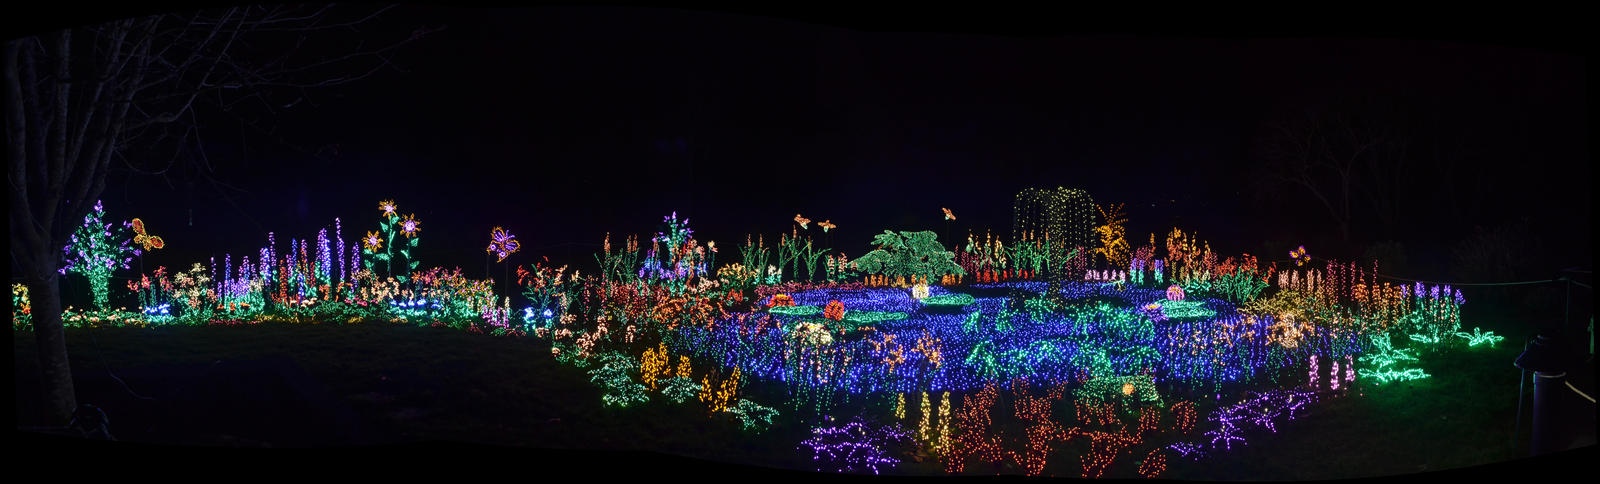 Garden d'Lights Pano by TheBelfig